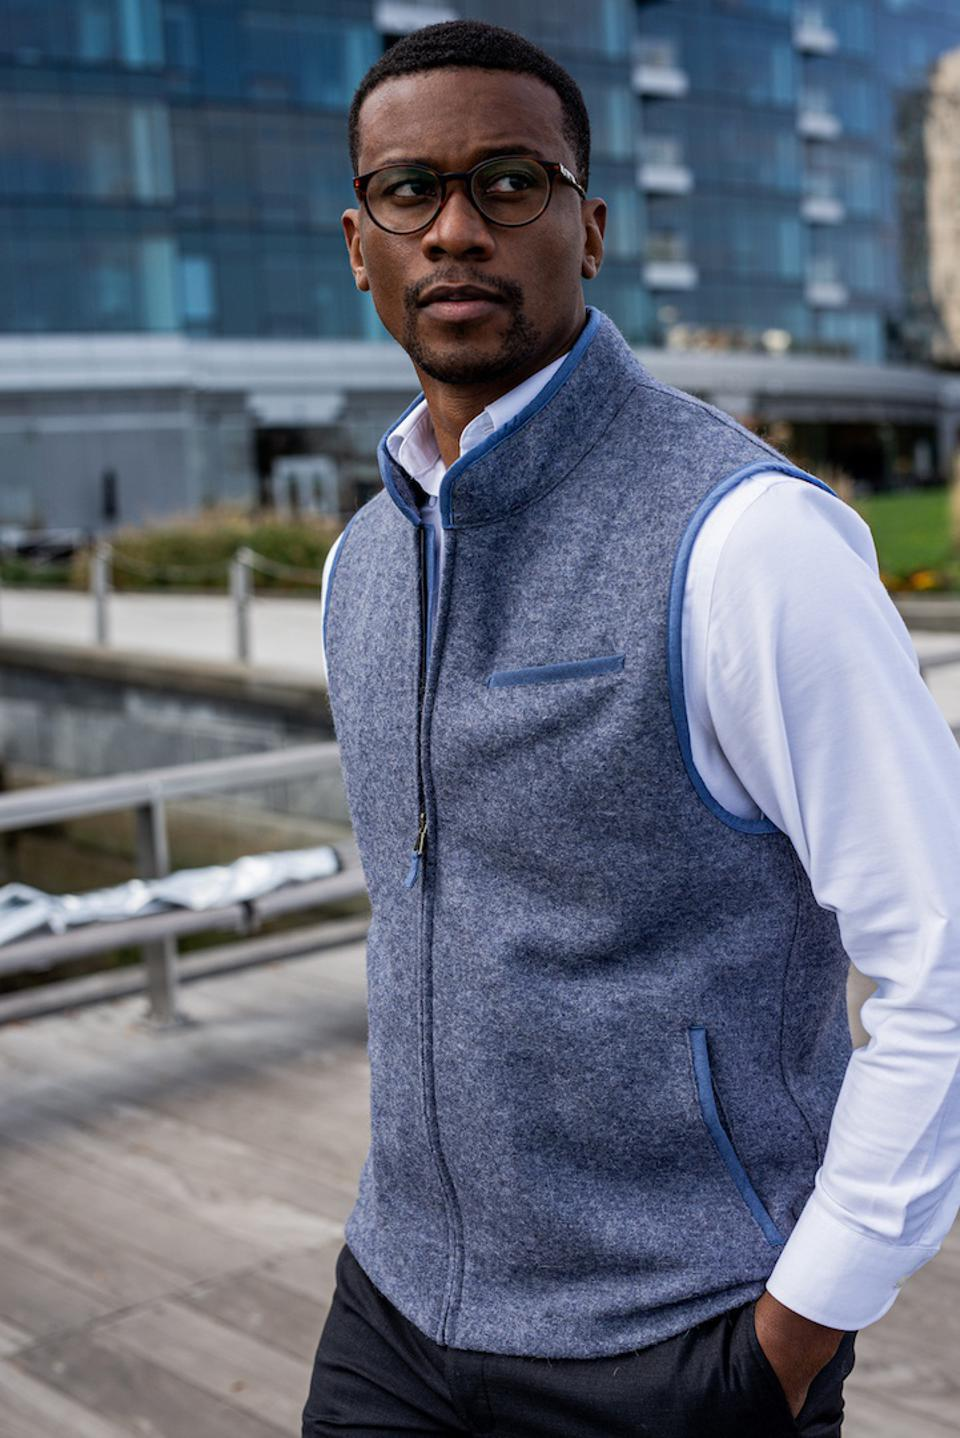 The Rittervest is thoughtfully constructed with superfine Alpaca and Merino sheep wool, natural fibers that exhibit superior thermoregulating properties. Soft like cashmere and stain, water, and wrinkle resistant.